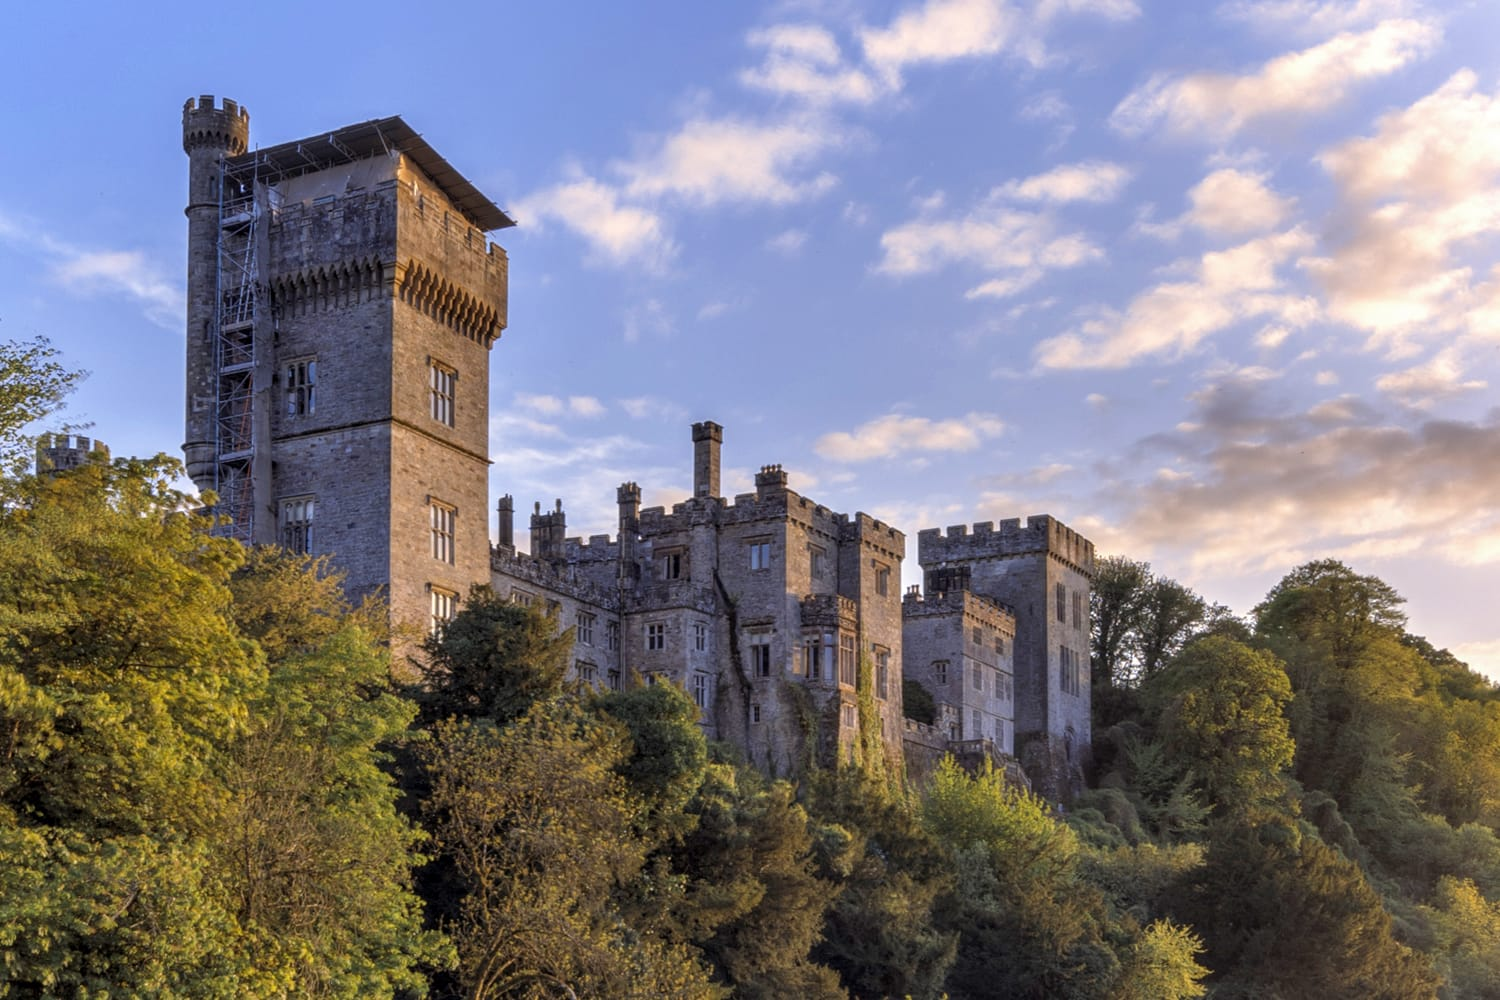 Lismore Castle in County Waterford, Ireland.